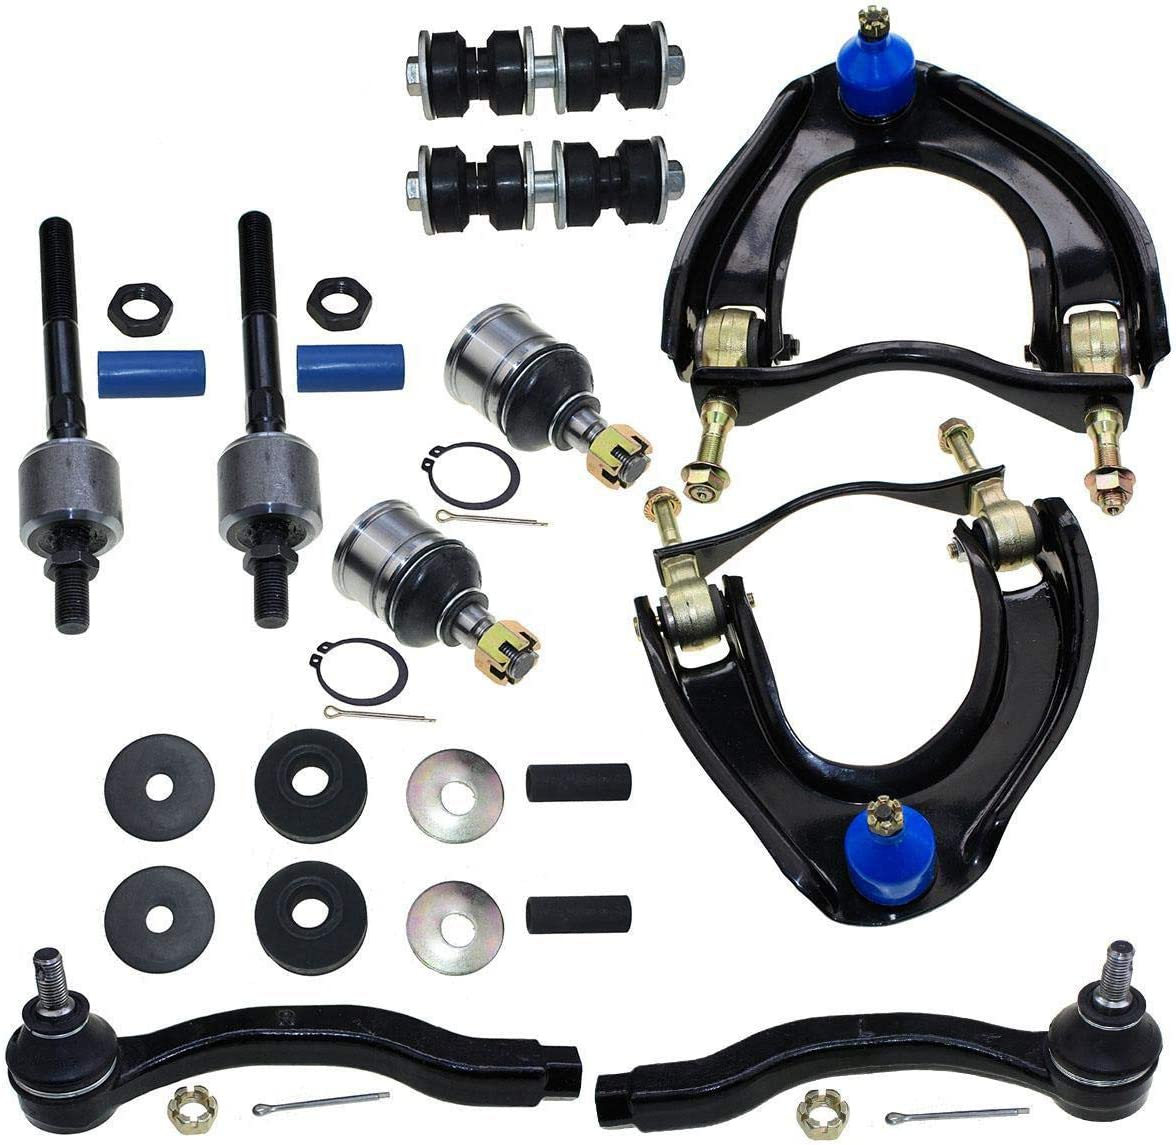 DLZ 12 Pcs Front Suspension Kit-Upper Control Arm Assembly Lower Ball Joint Inner Outer Tie Rod End Sway Bar Shock Bushing Compatible with Honda Civic CRX 1988 1989 1990 1991 K9385 ES2946L EV217